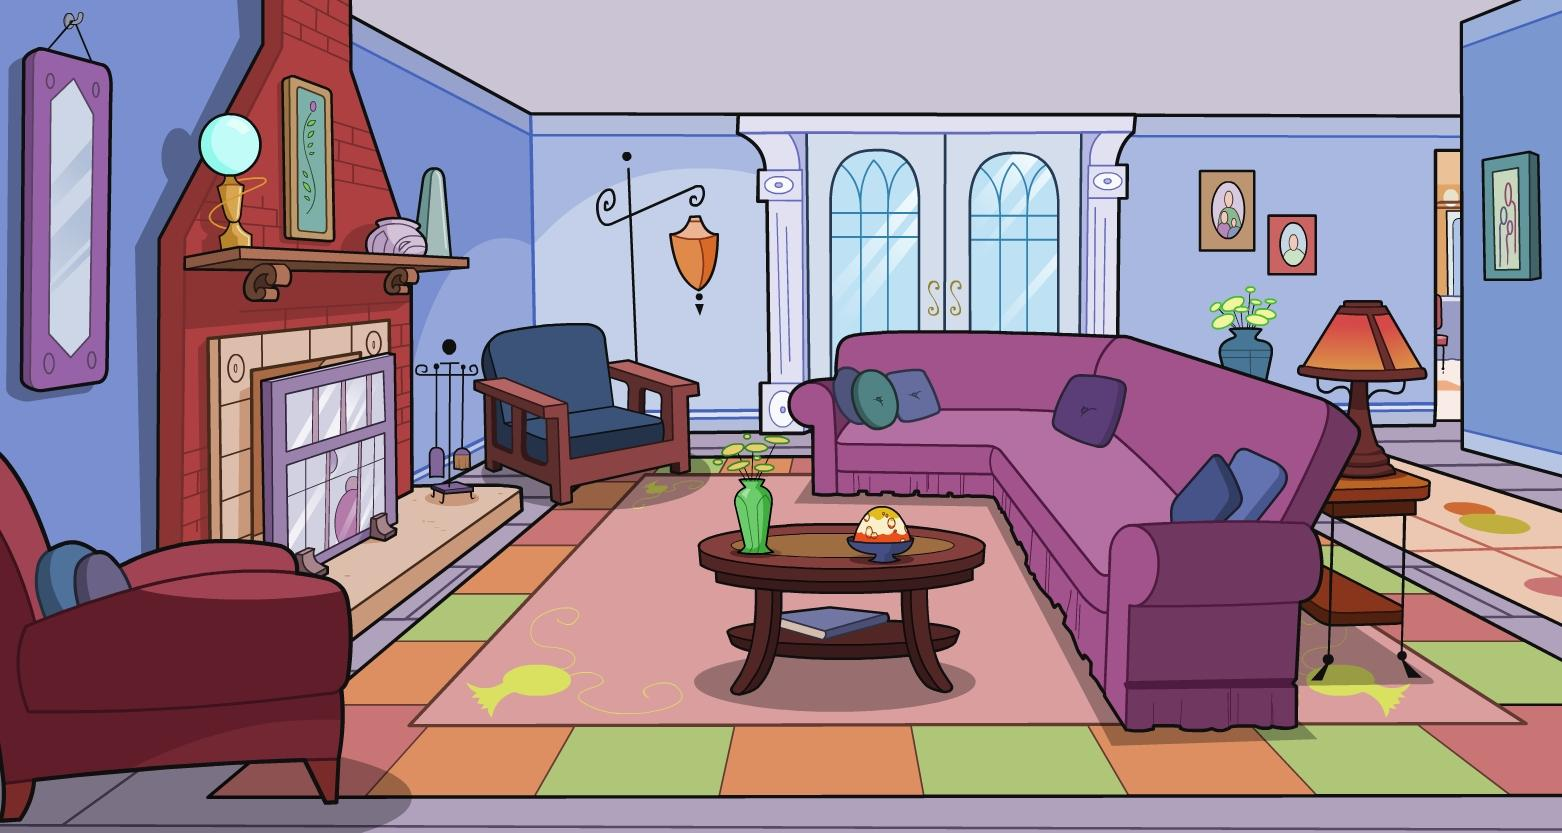 Living Room clipart my house Of card 1living_room_clipart_2 Technology ROOM